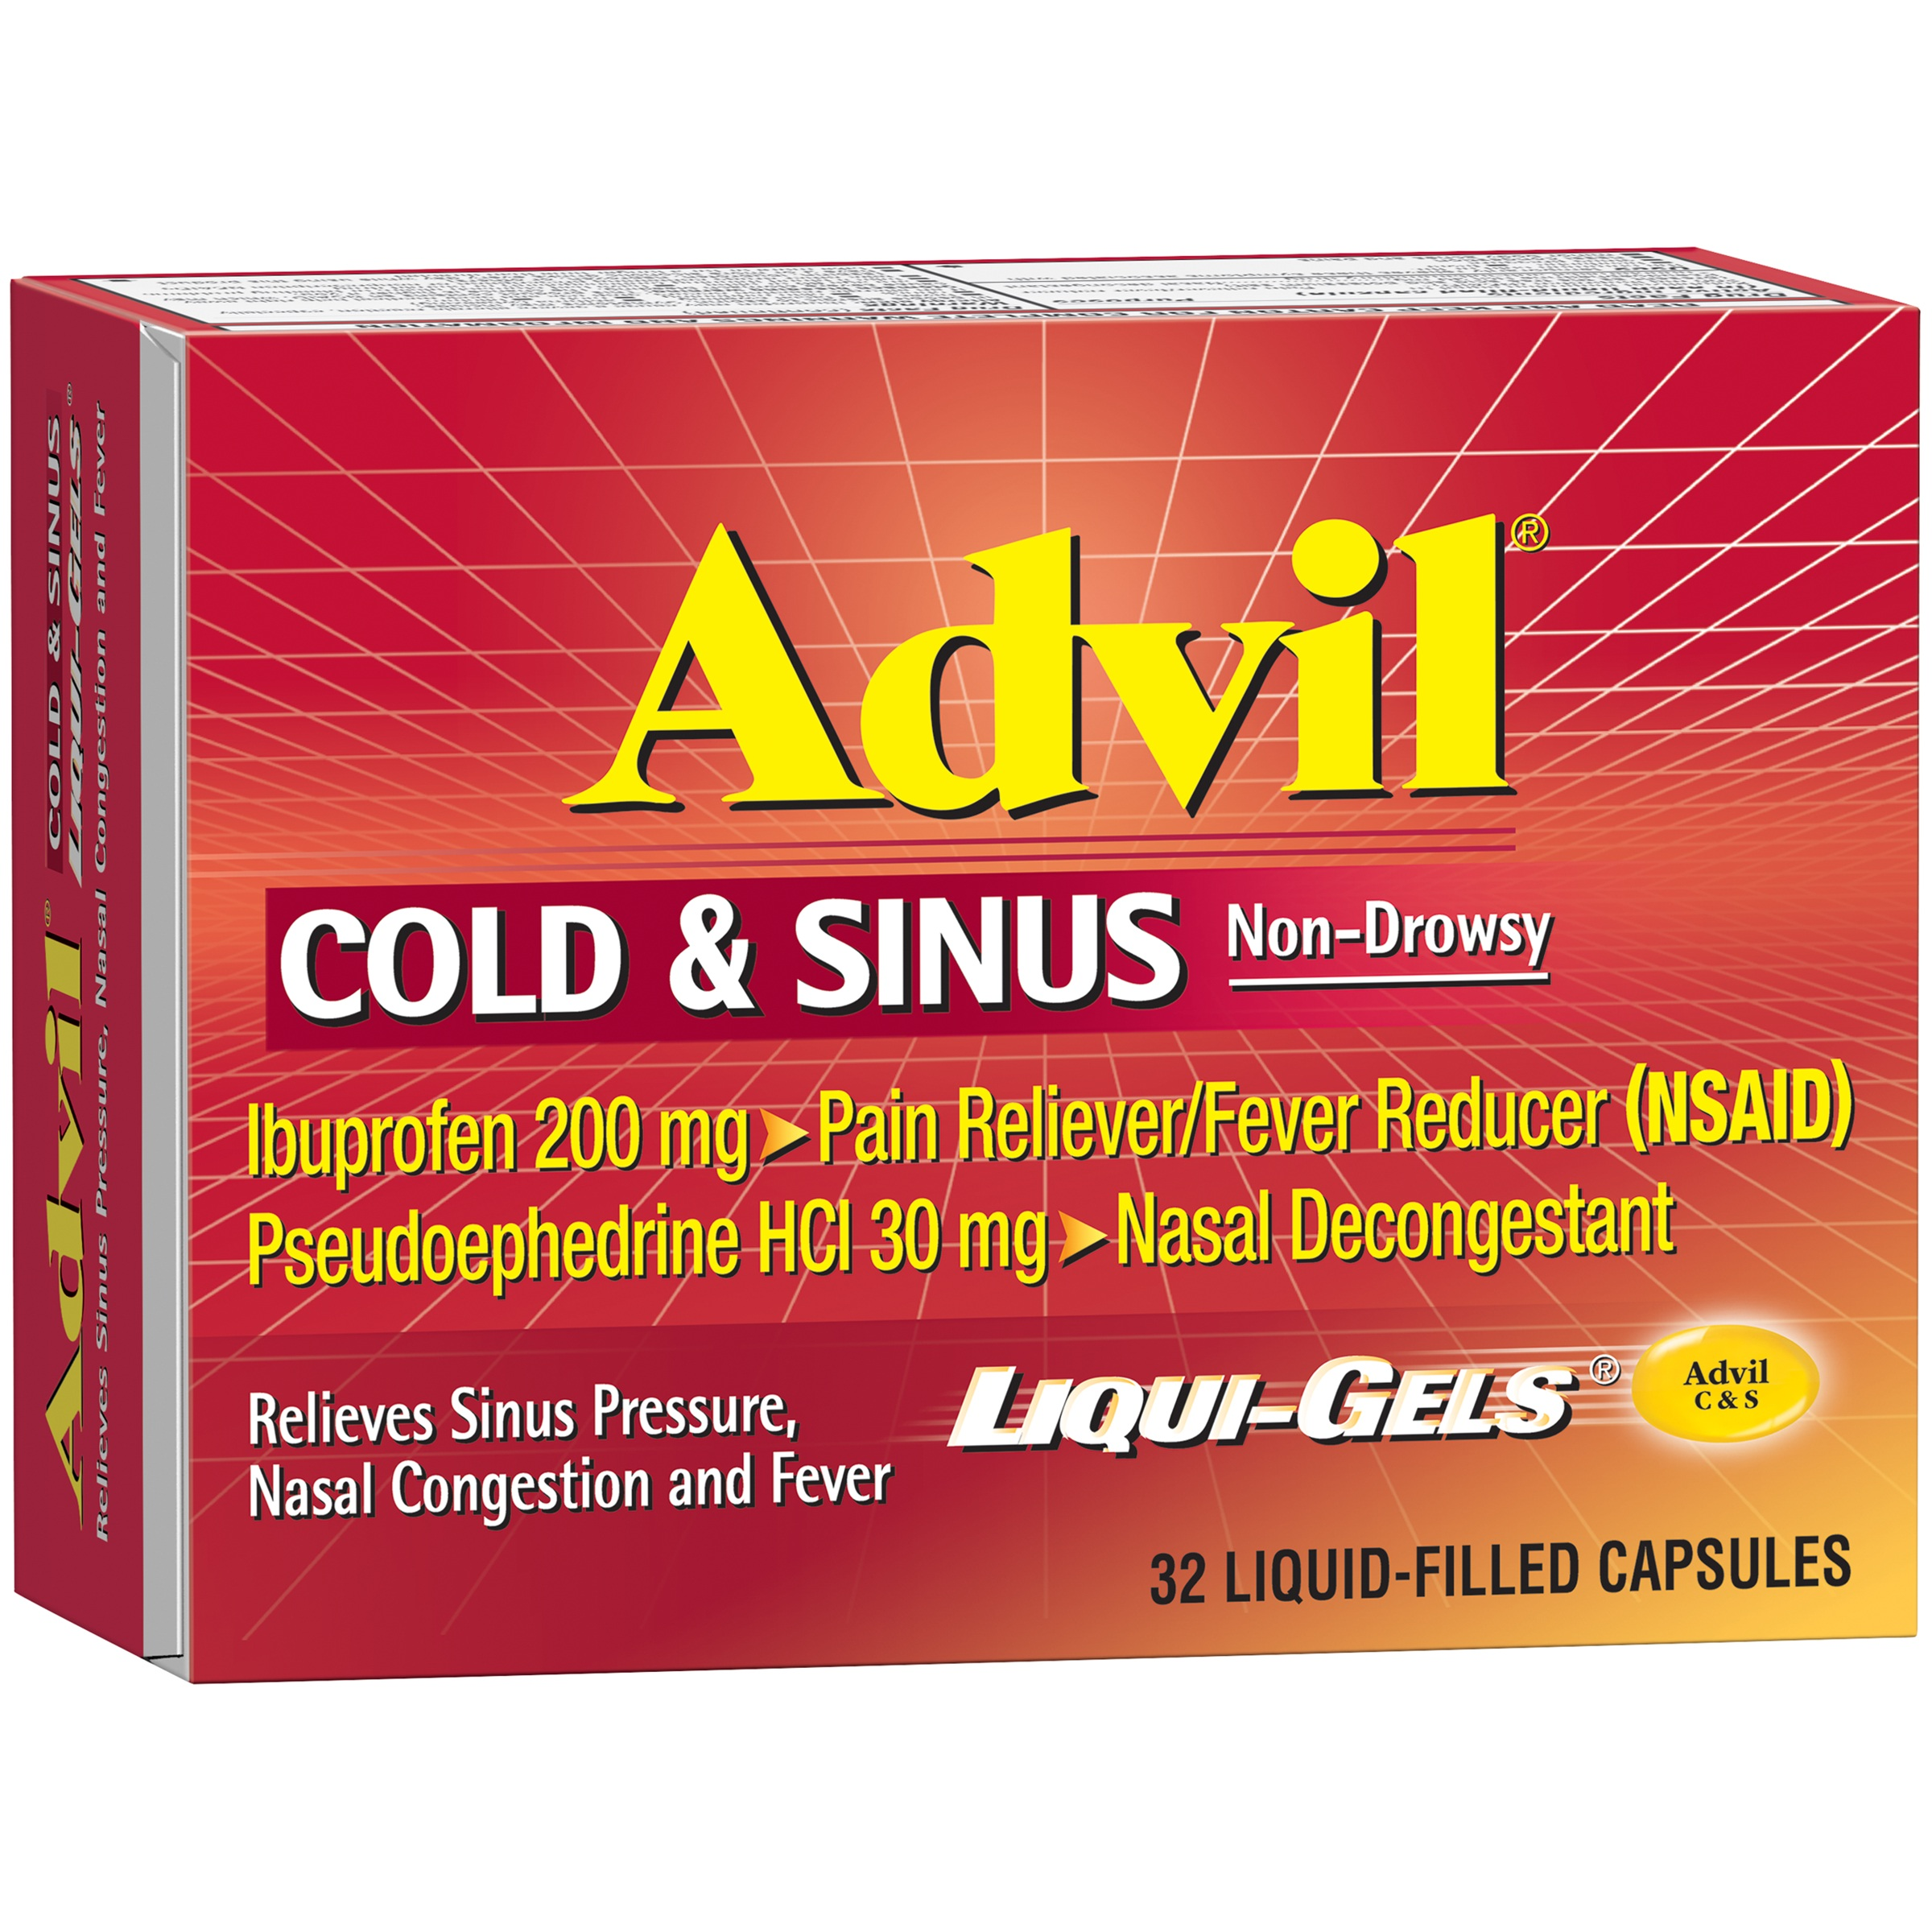 Advil® Cold & Sinus Non-Drowsy Pain Reliever/Fever Reducer & Decongestant  Liqui